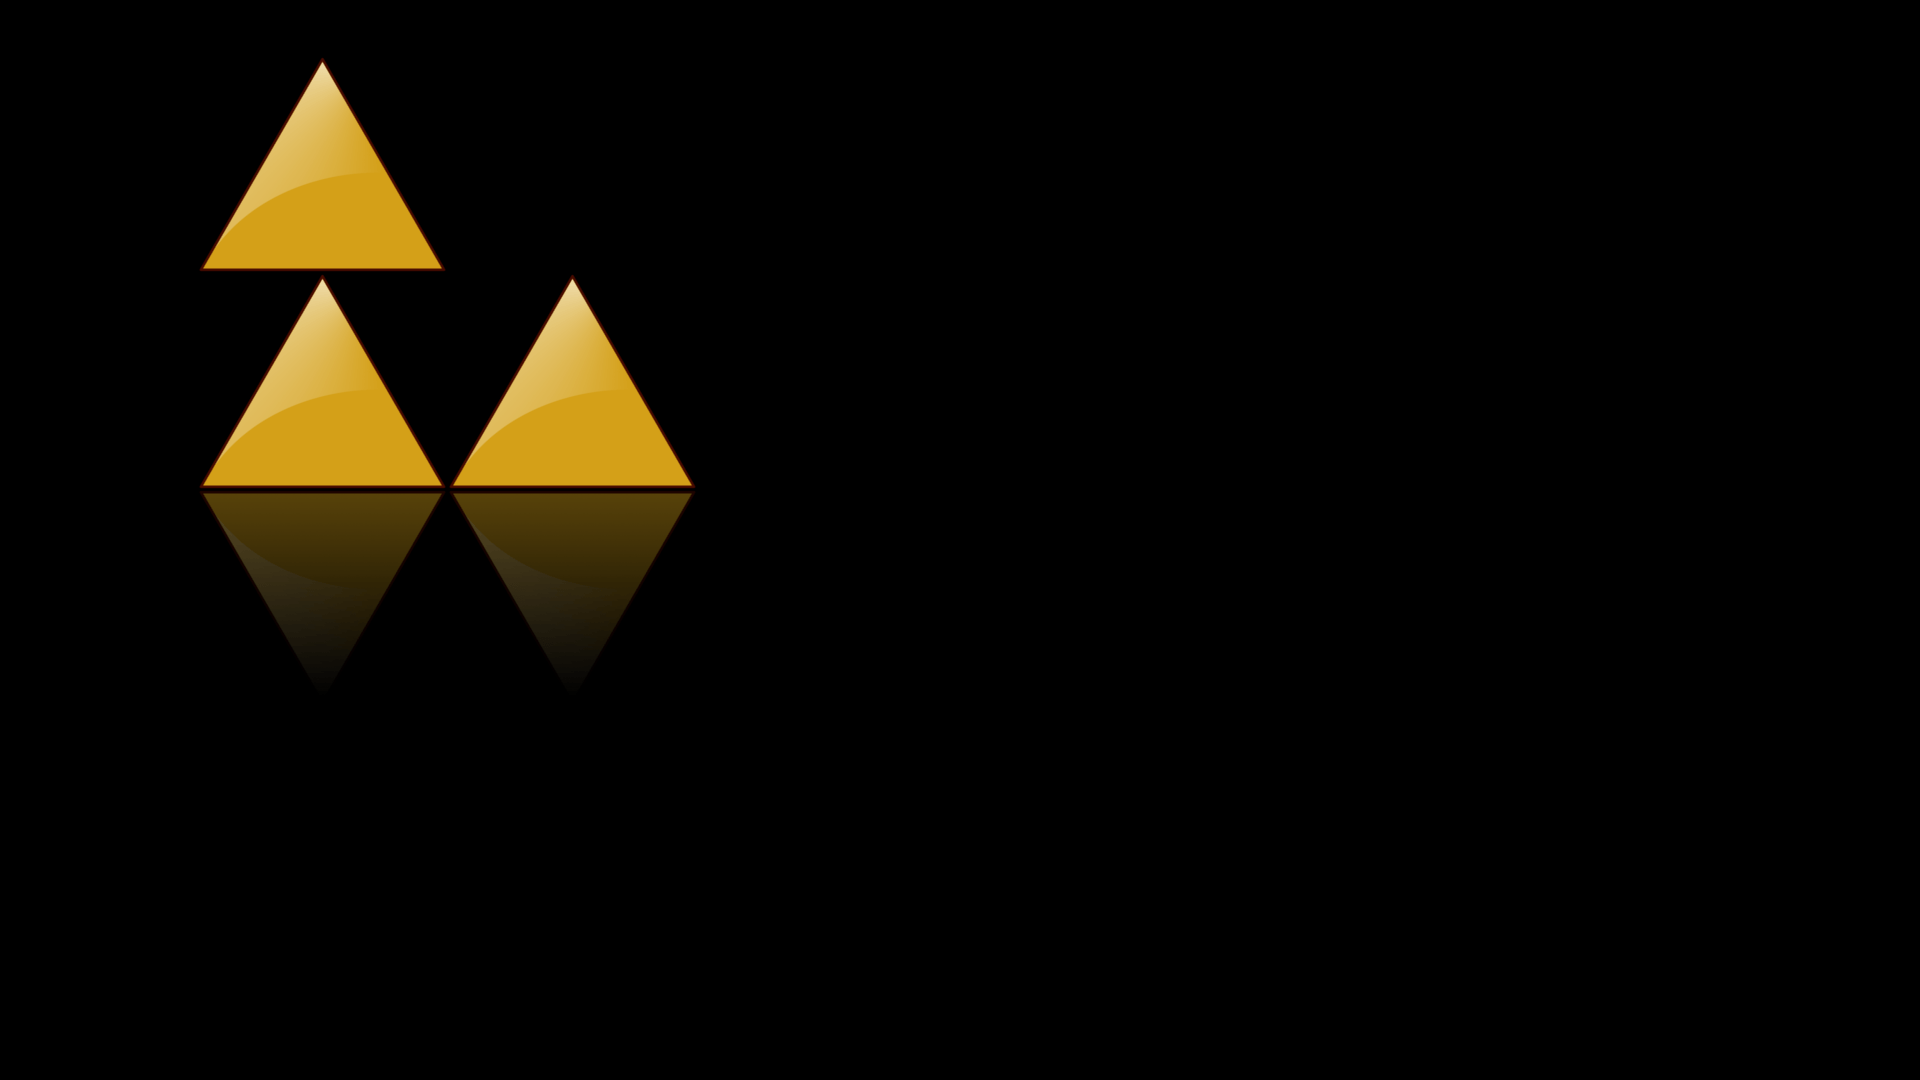 Triforce Backgrounds